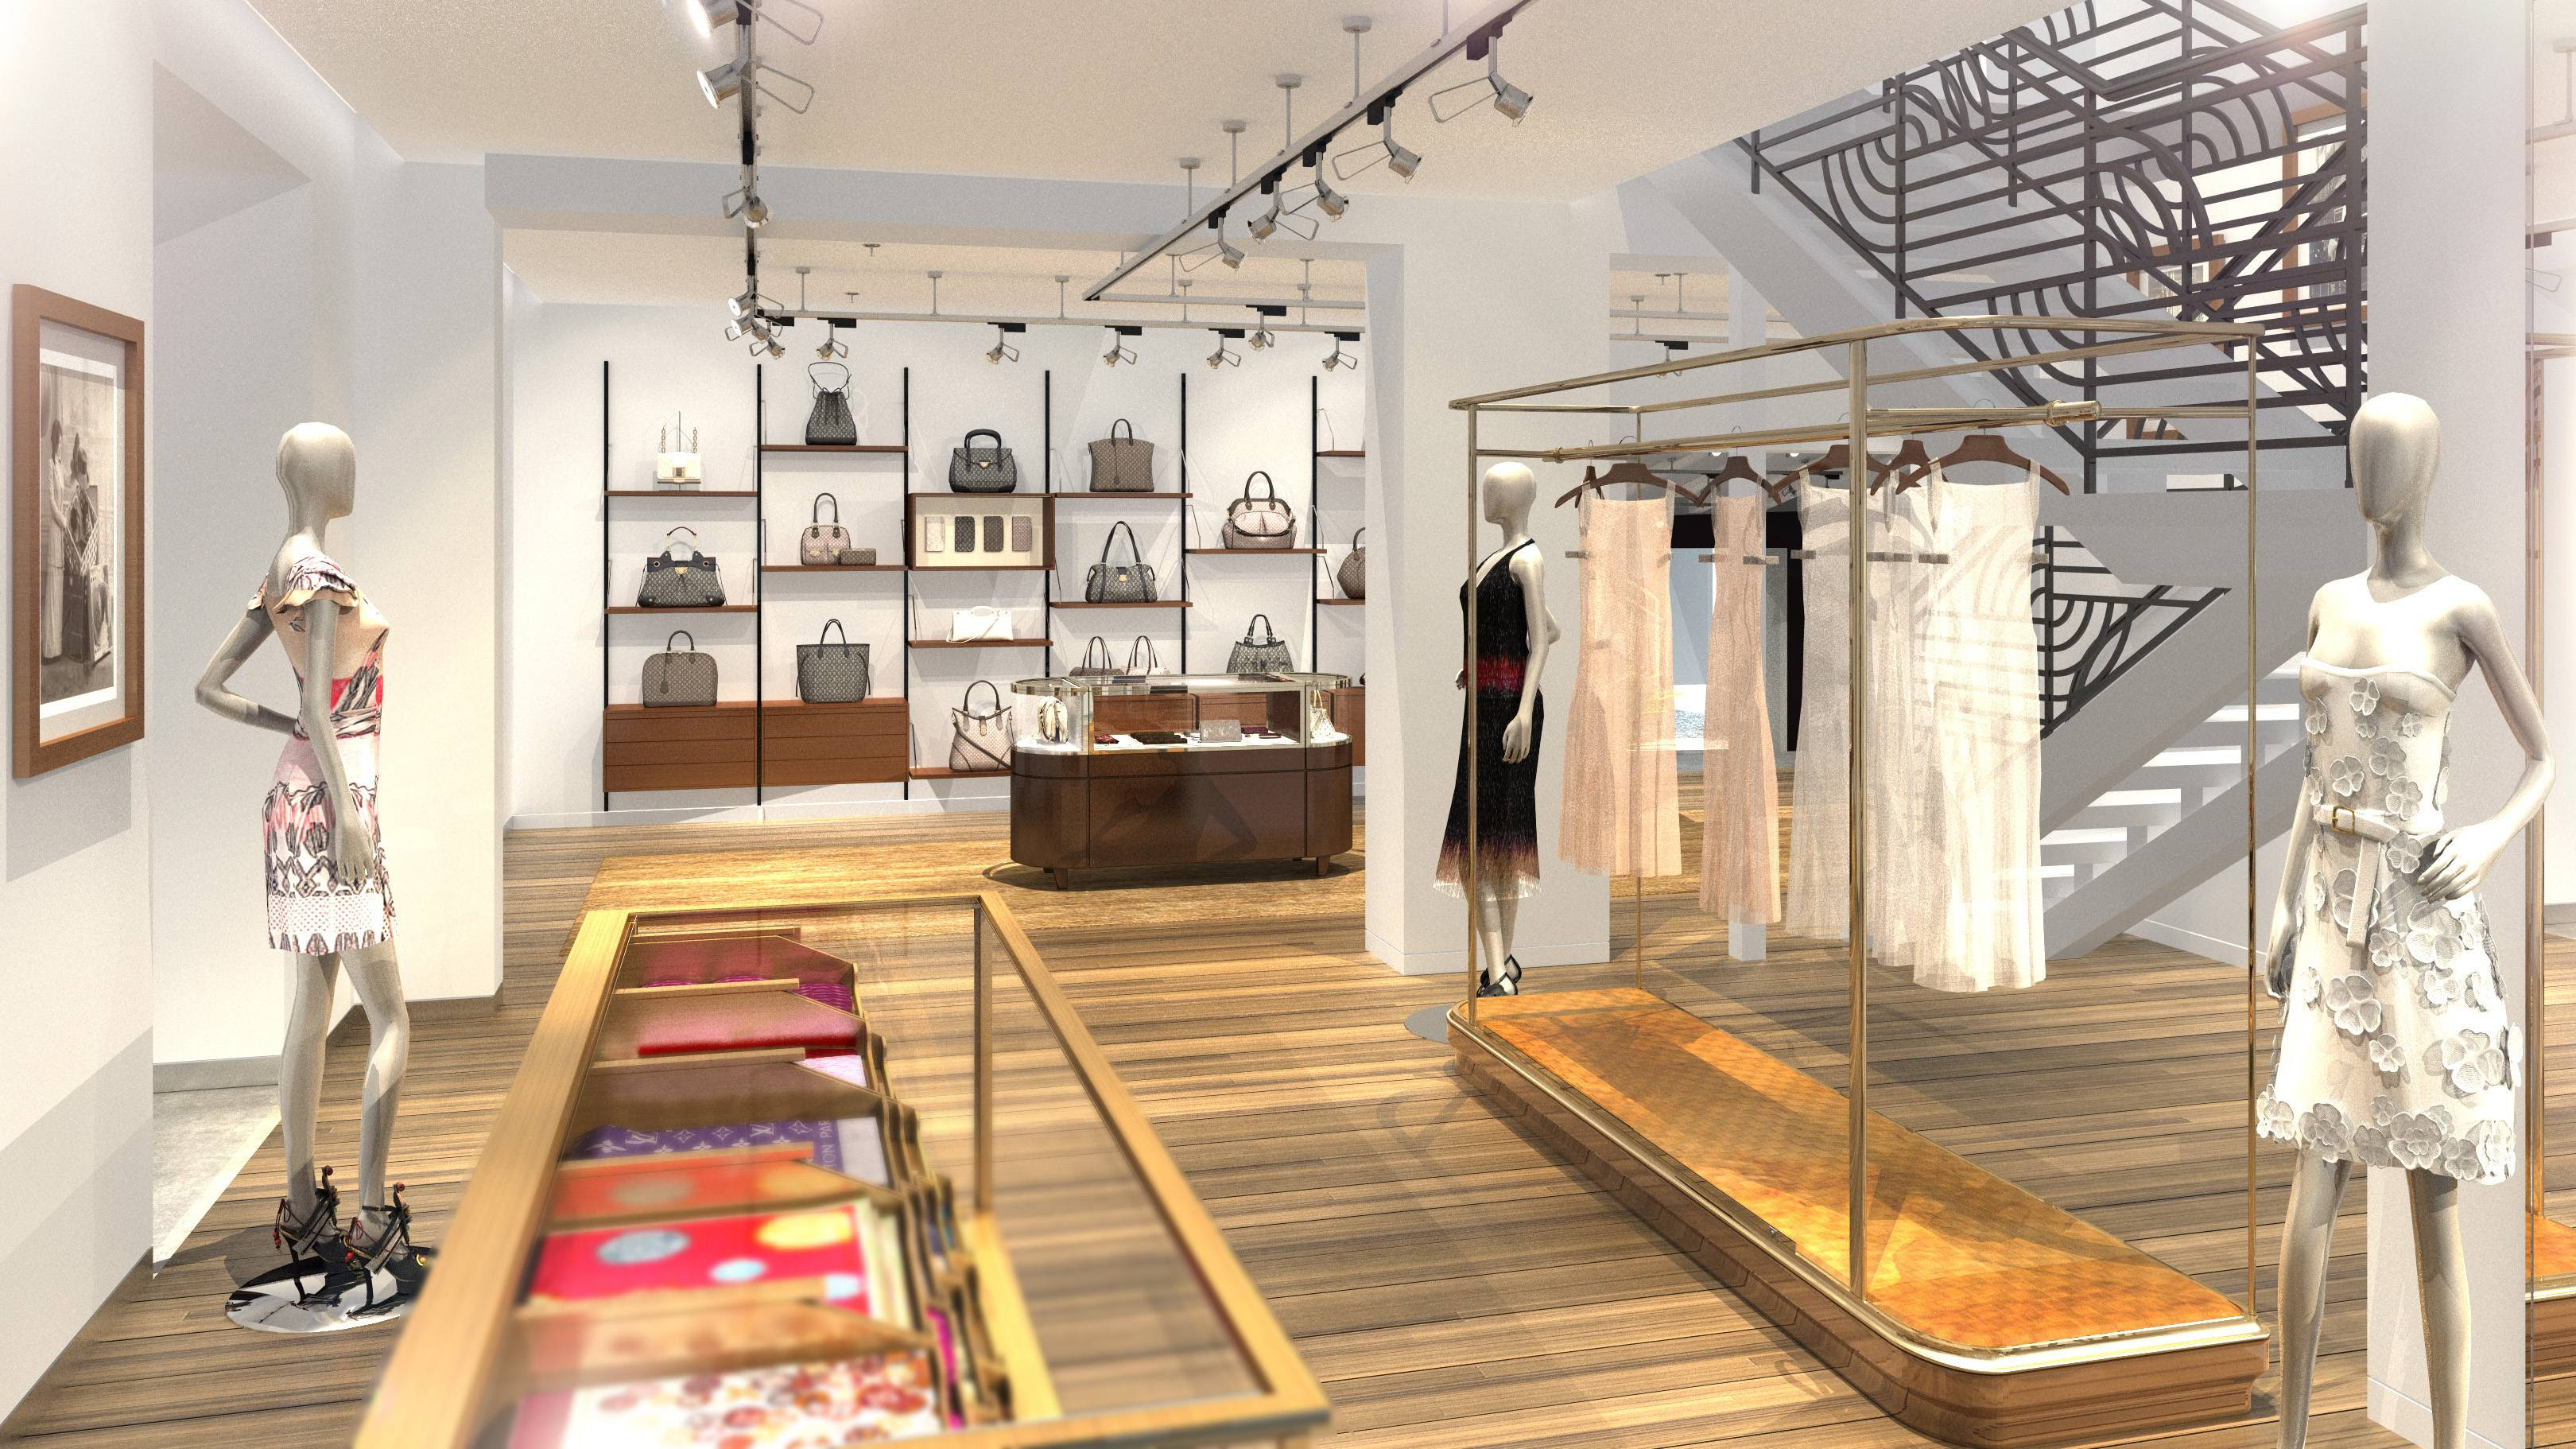 Louis Vuitton Announces New Location In Miamis Design District